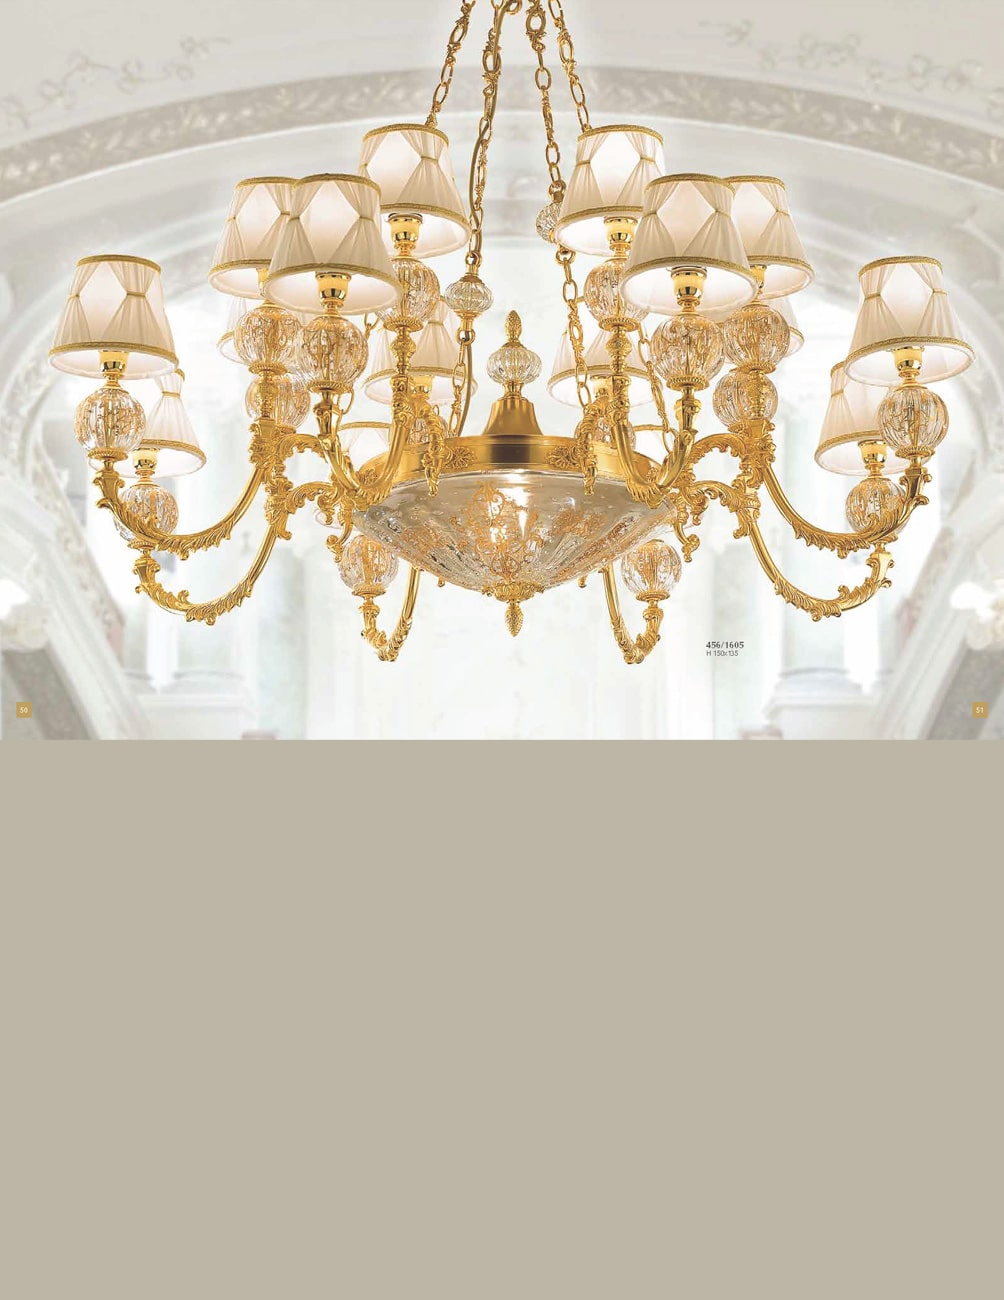 decorative lighting chandeliers 80